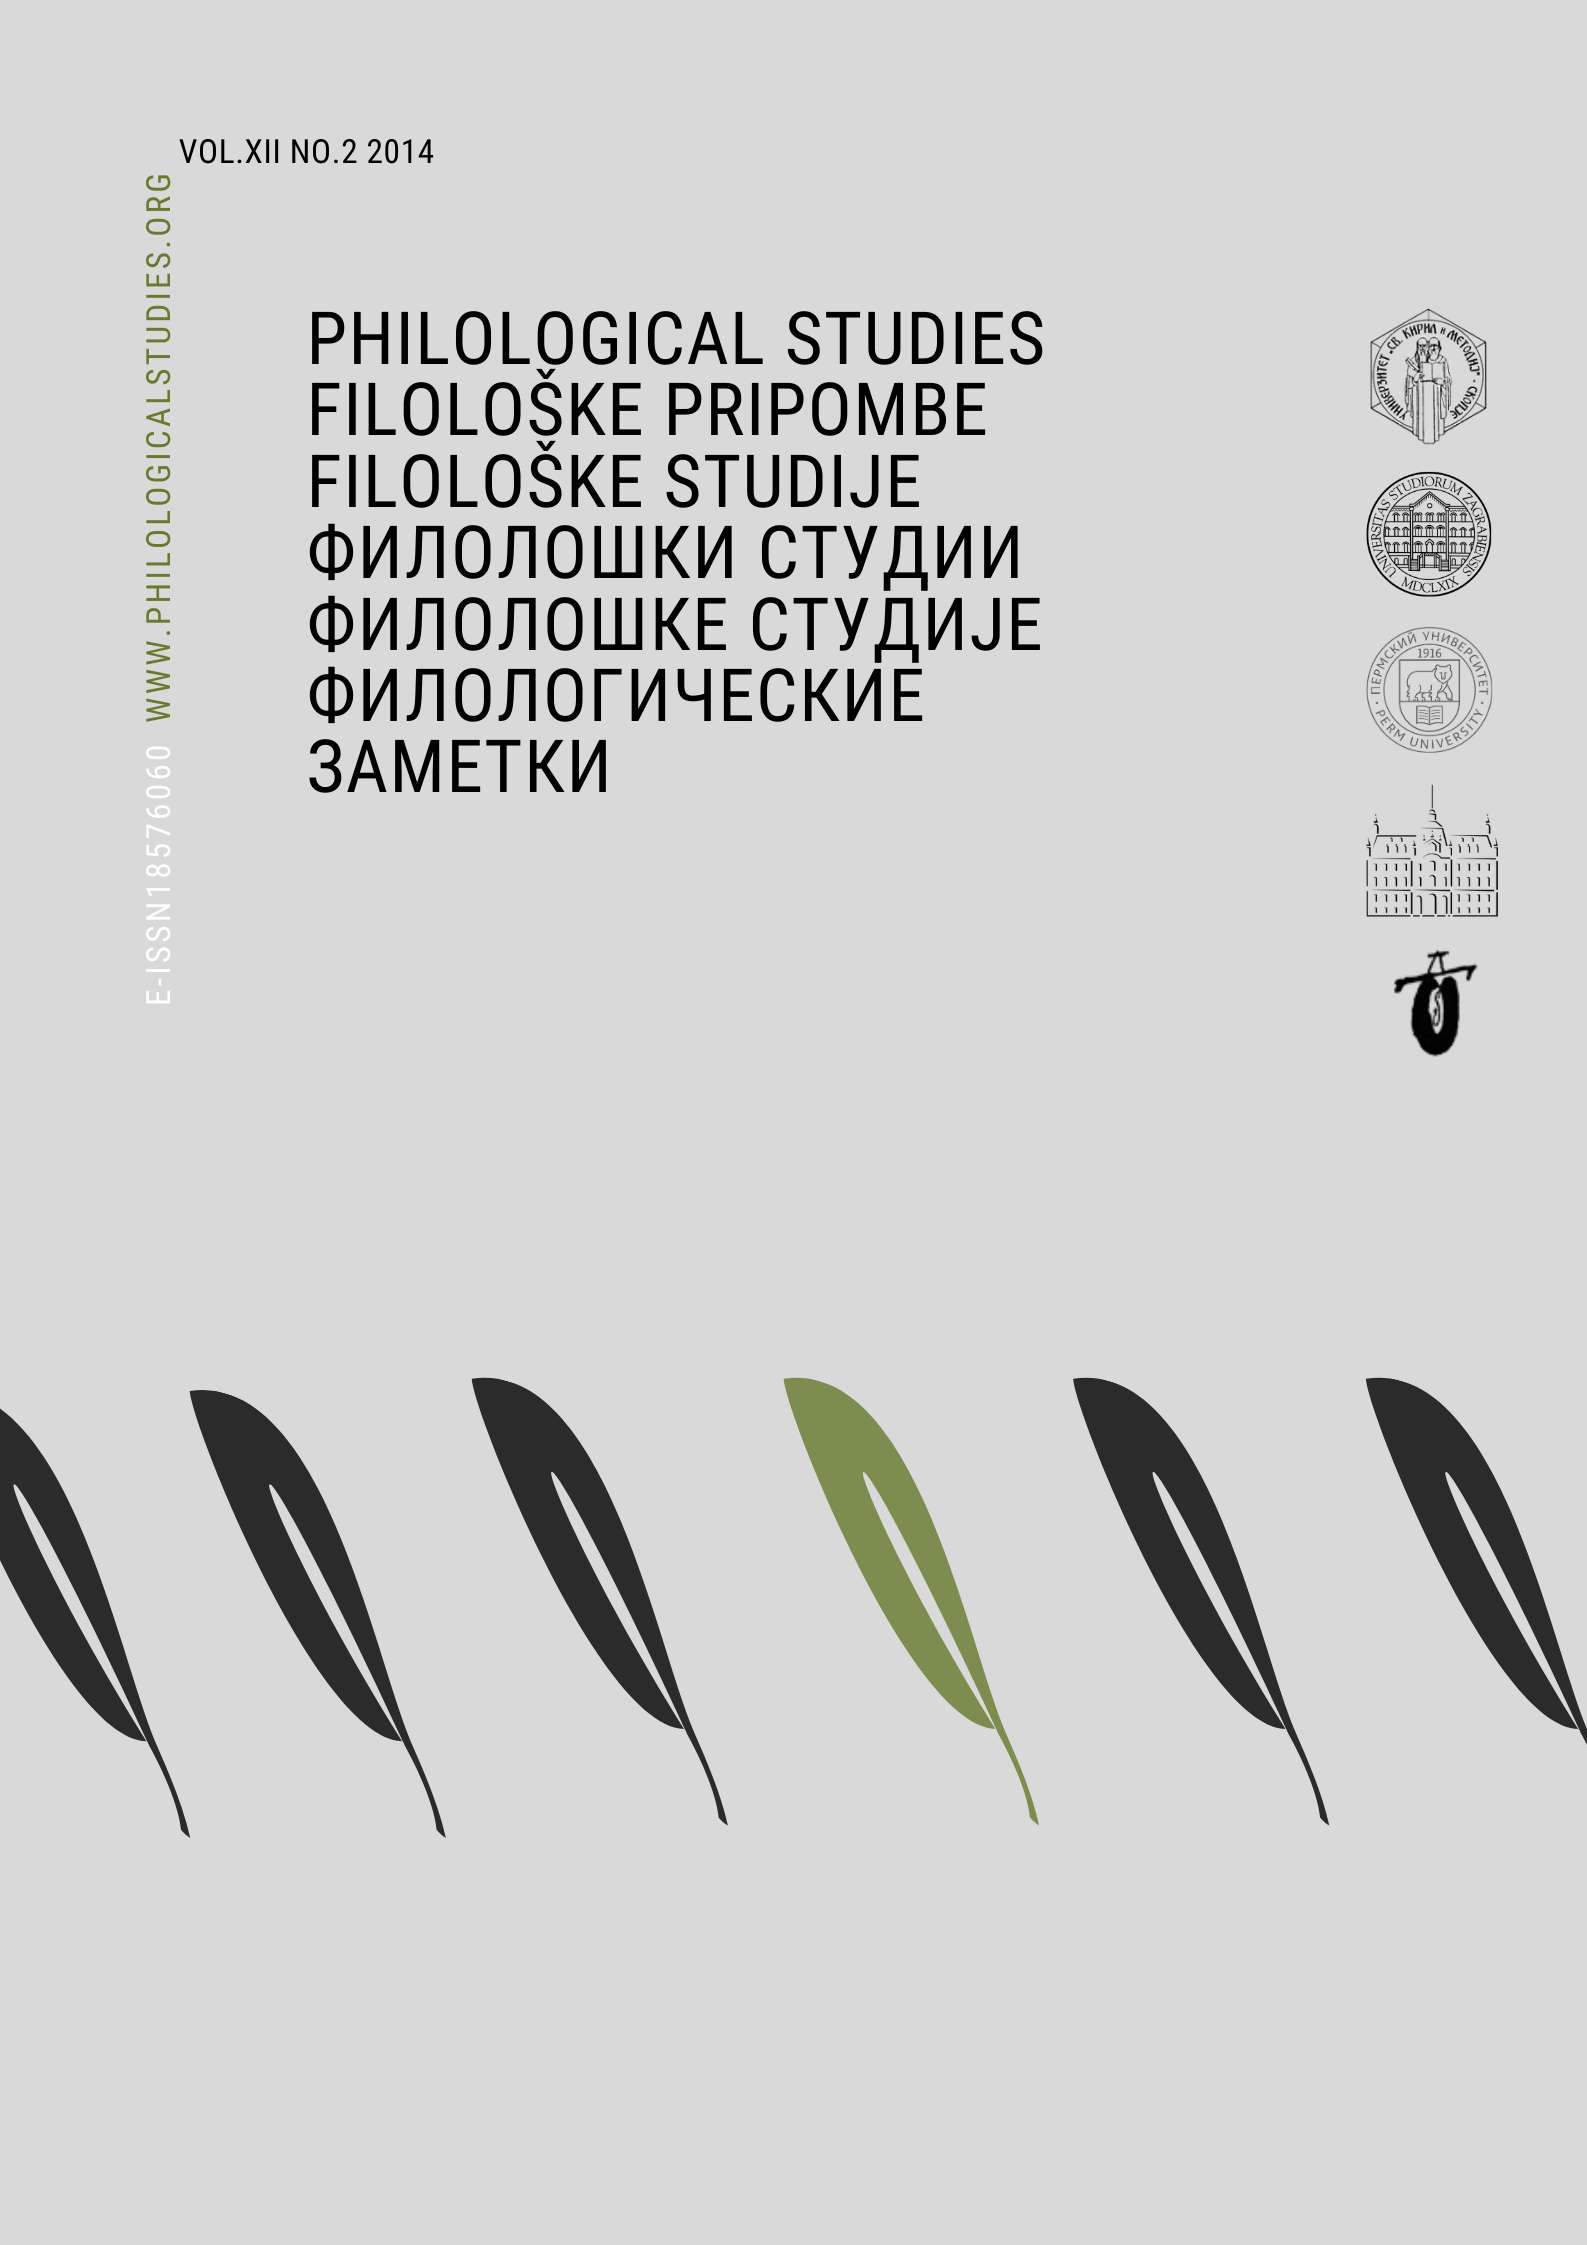 Philological Studies Vol.12 No.2 2014